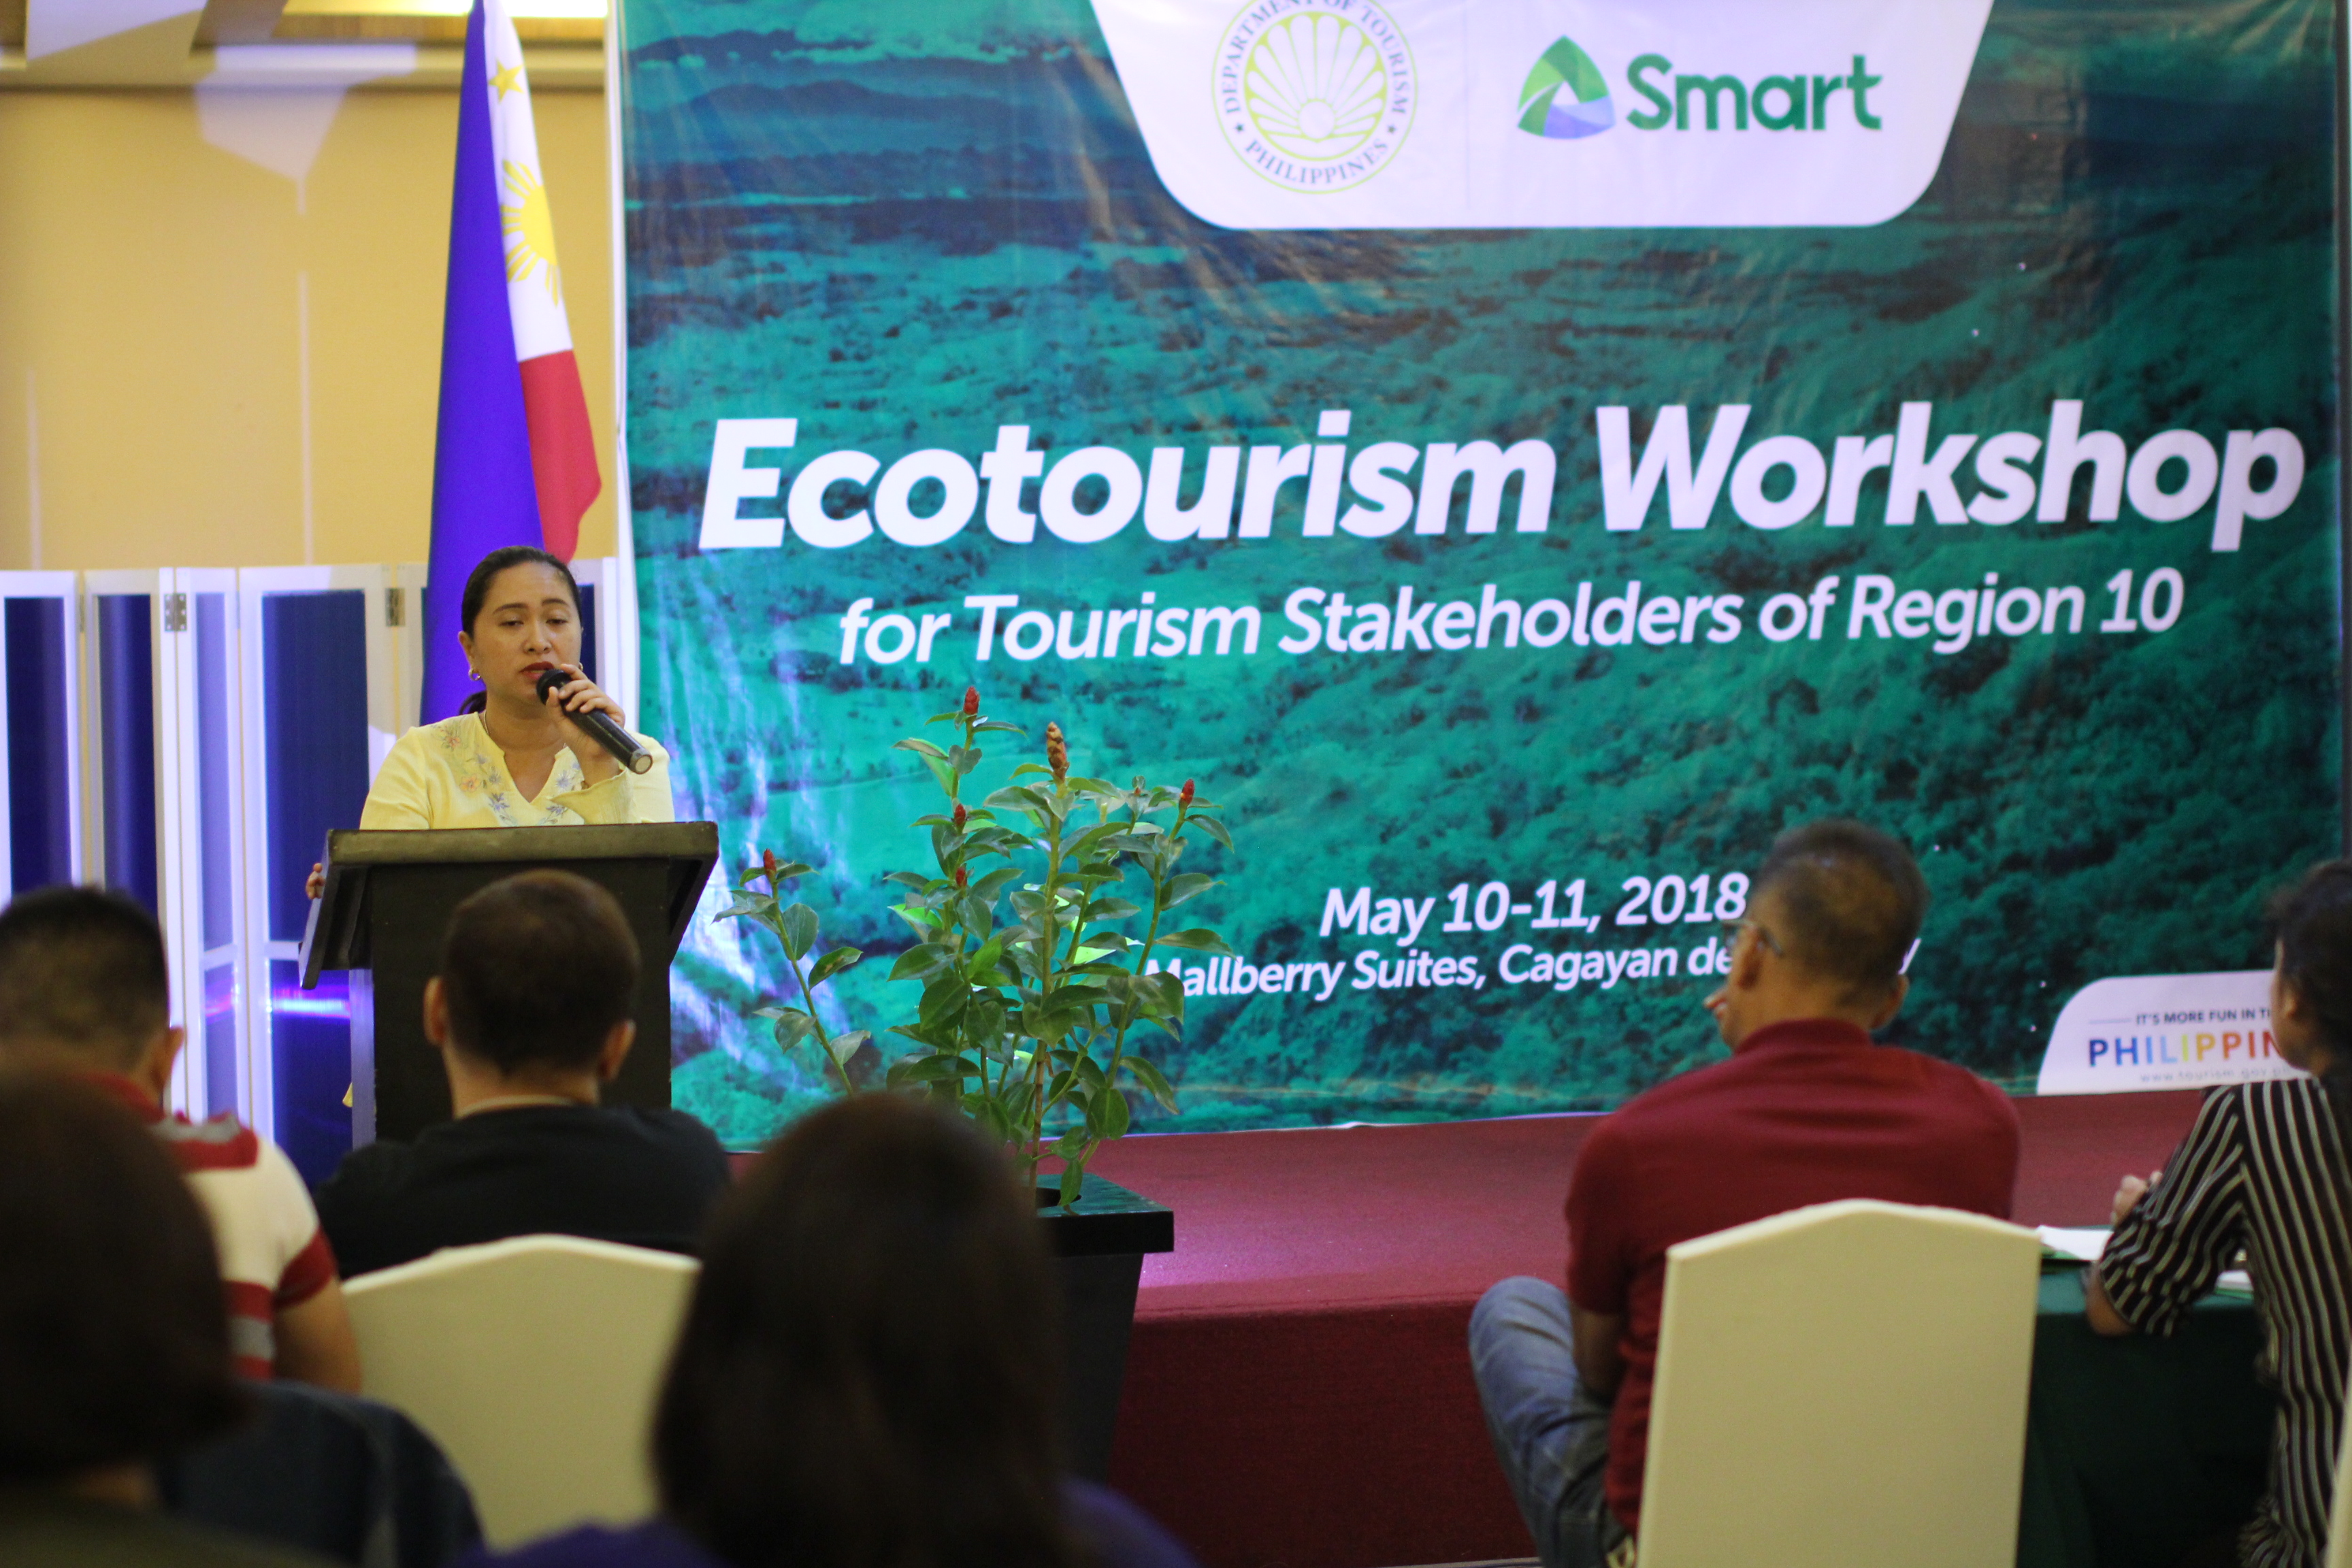 Elaine Unchuan ecotourism workshop CDO